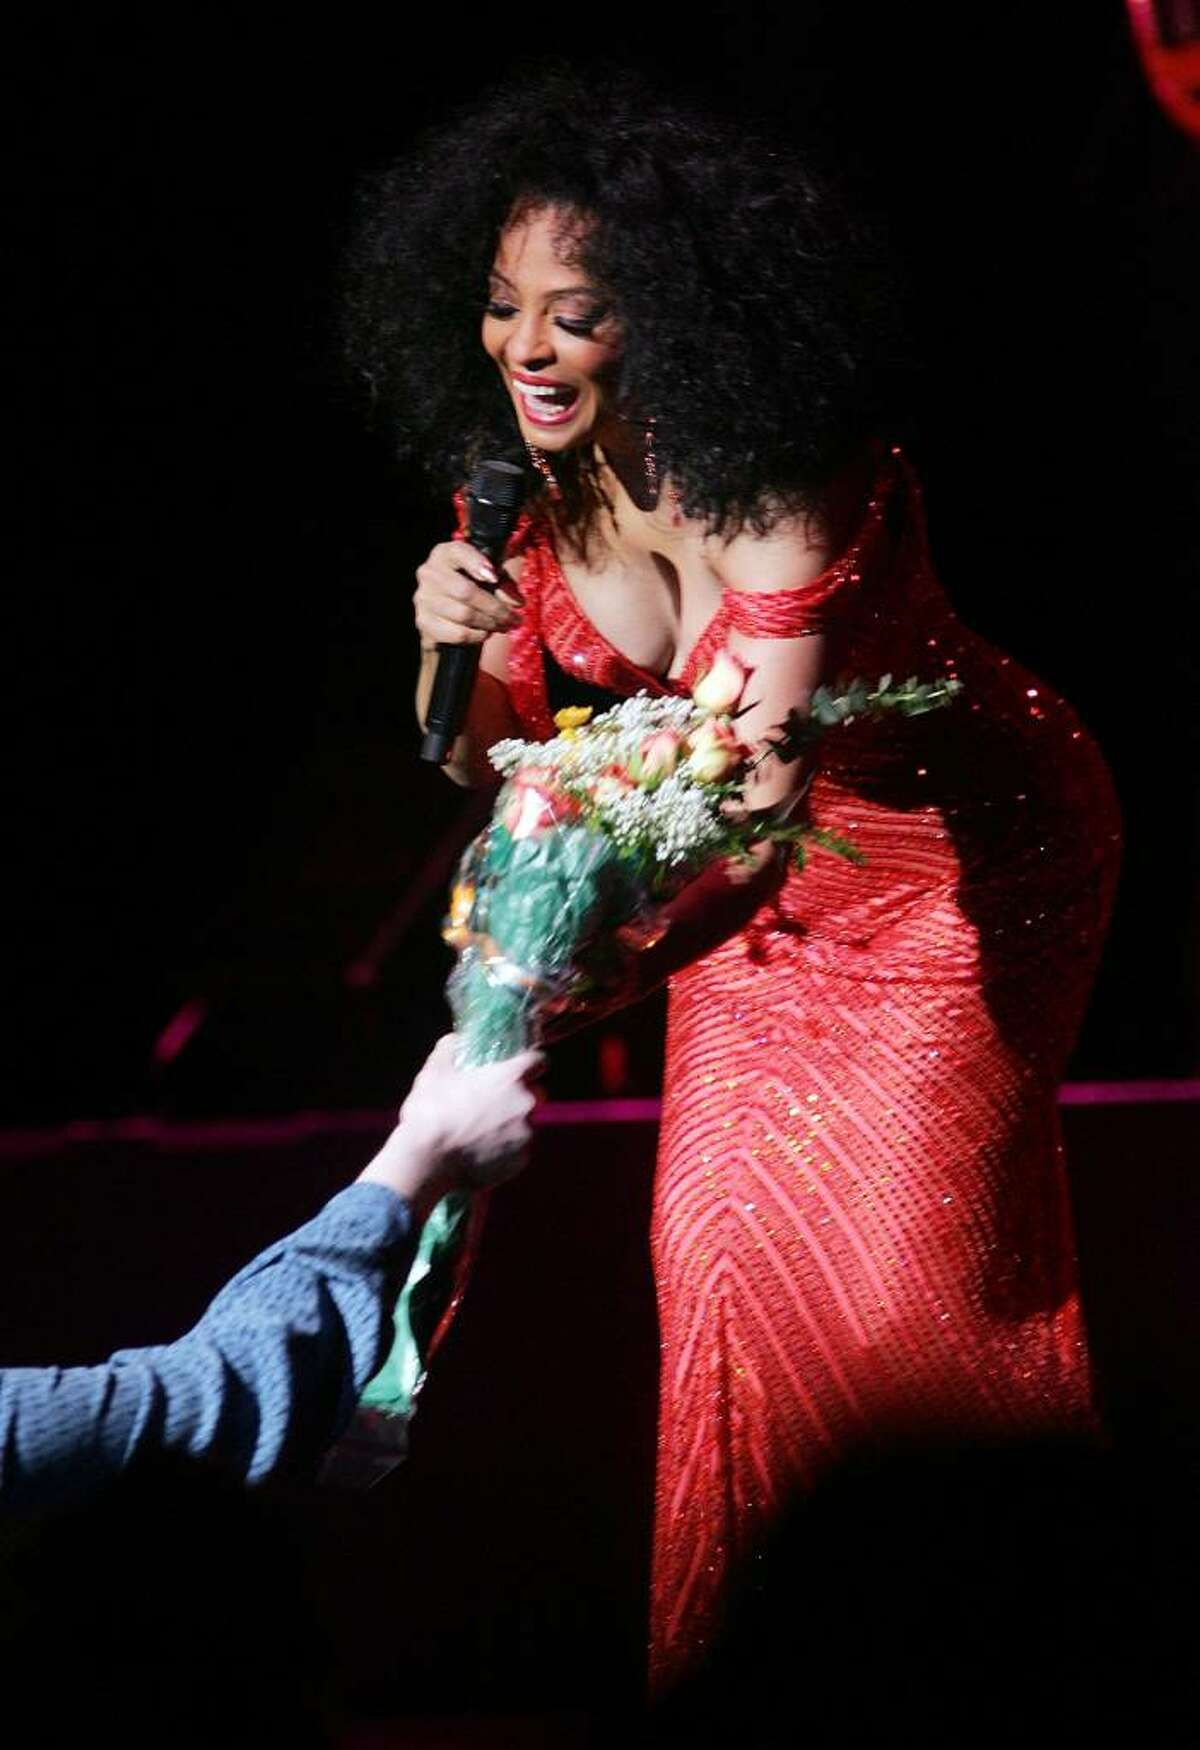 NEW YORK - APRIL 6: Singer Diana Ross performs to a sold-out crowd at the Theater at Madison Square Garden April 6, 2007 in New York City. (Photo by Scott Gries/Getty Images) *** Local Caption *** Diana Ross